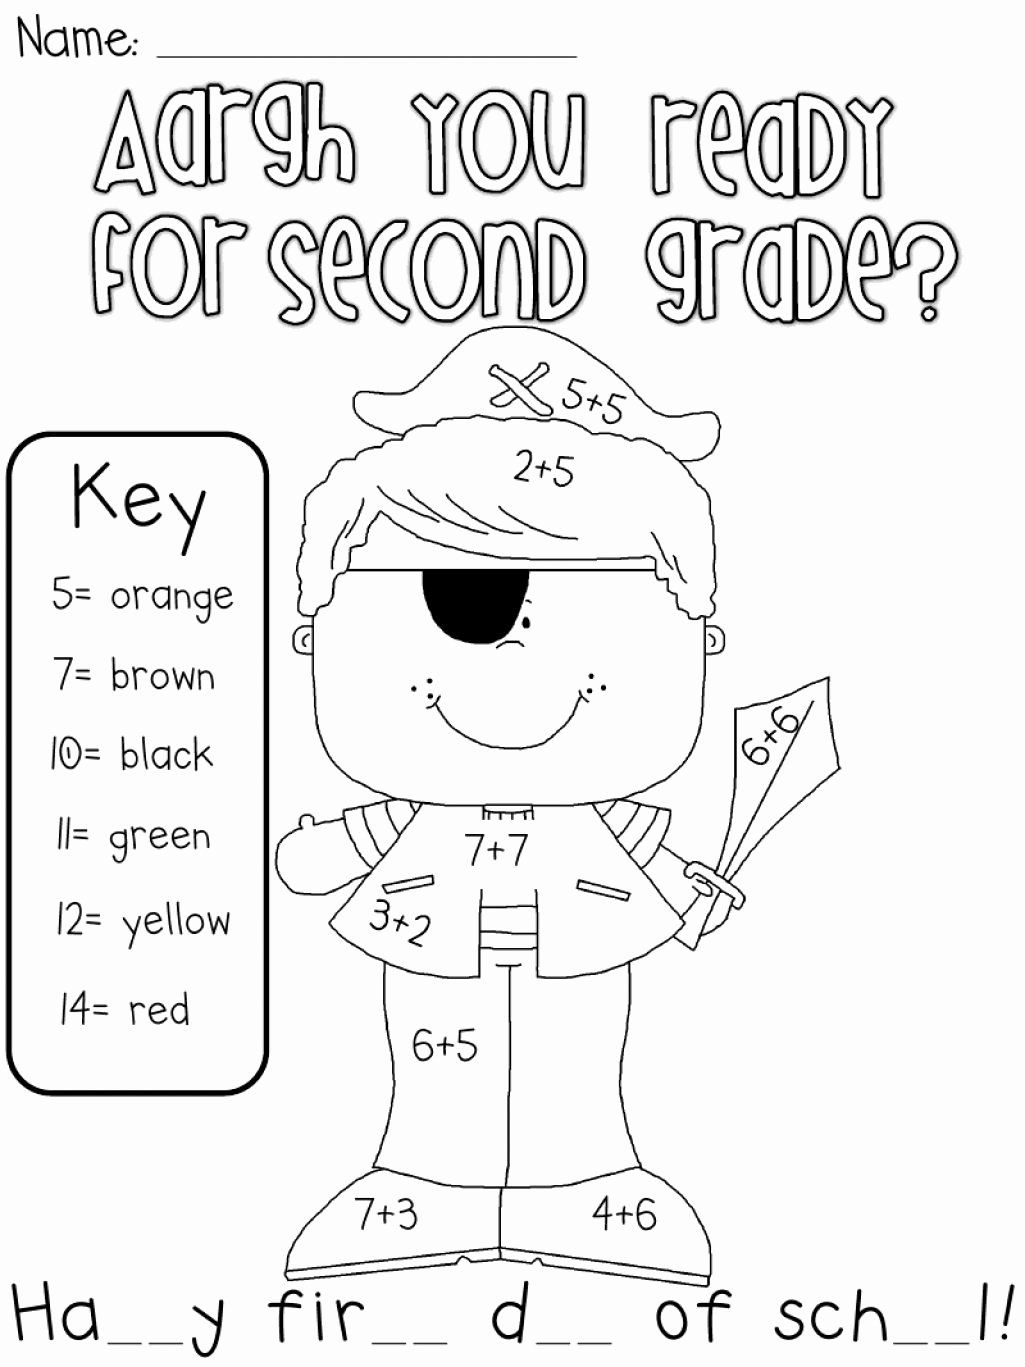 Coloring Activities For 3rd Grade Coloring Pages Gallery First Day Of School Activities School Activities Kindergarten First Day